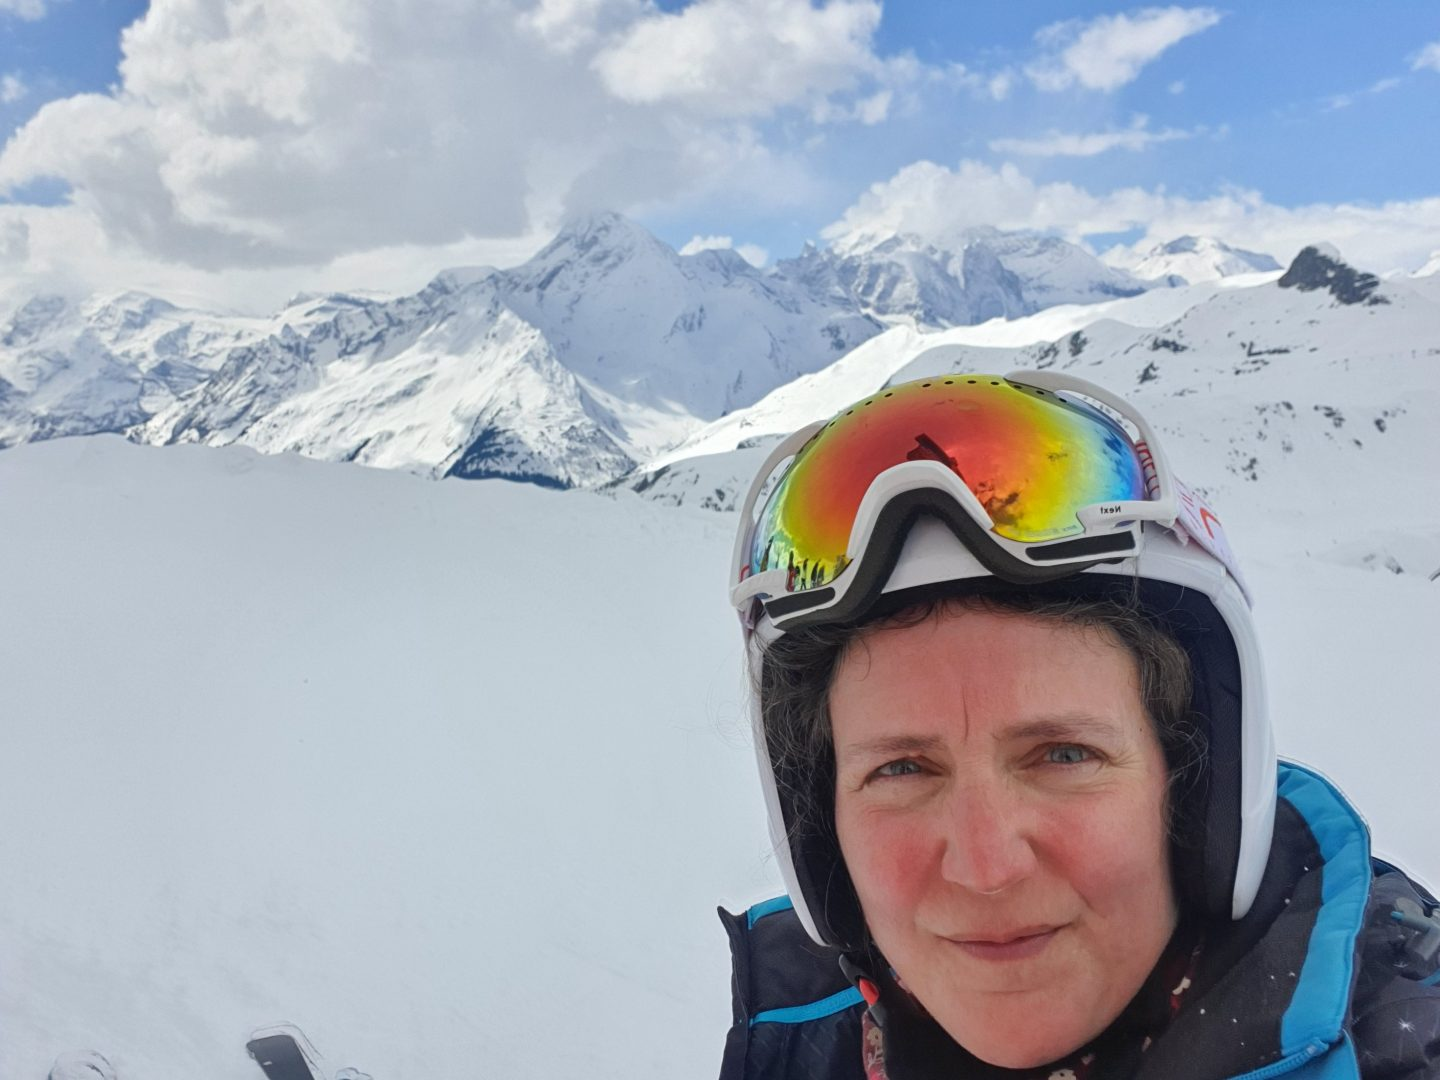 Although making her dream a reality, Zoe looks at the camera with anxiety in her face. She wears a ski helmet and goggles on her head. An expanse of blue/white snow and the backdrop of the French Alps lie behind her.